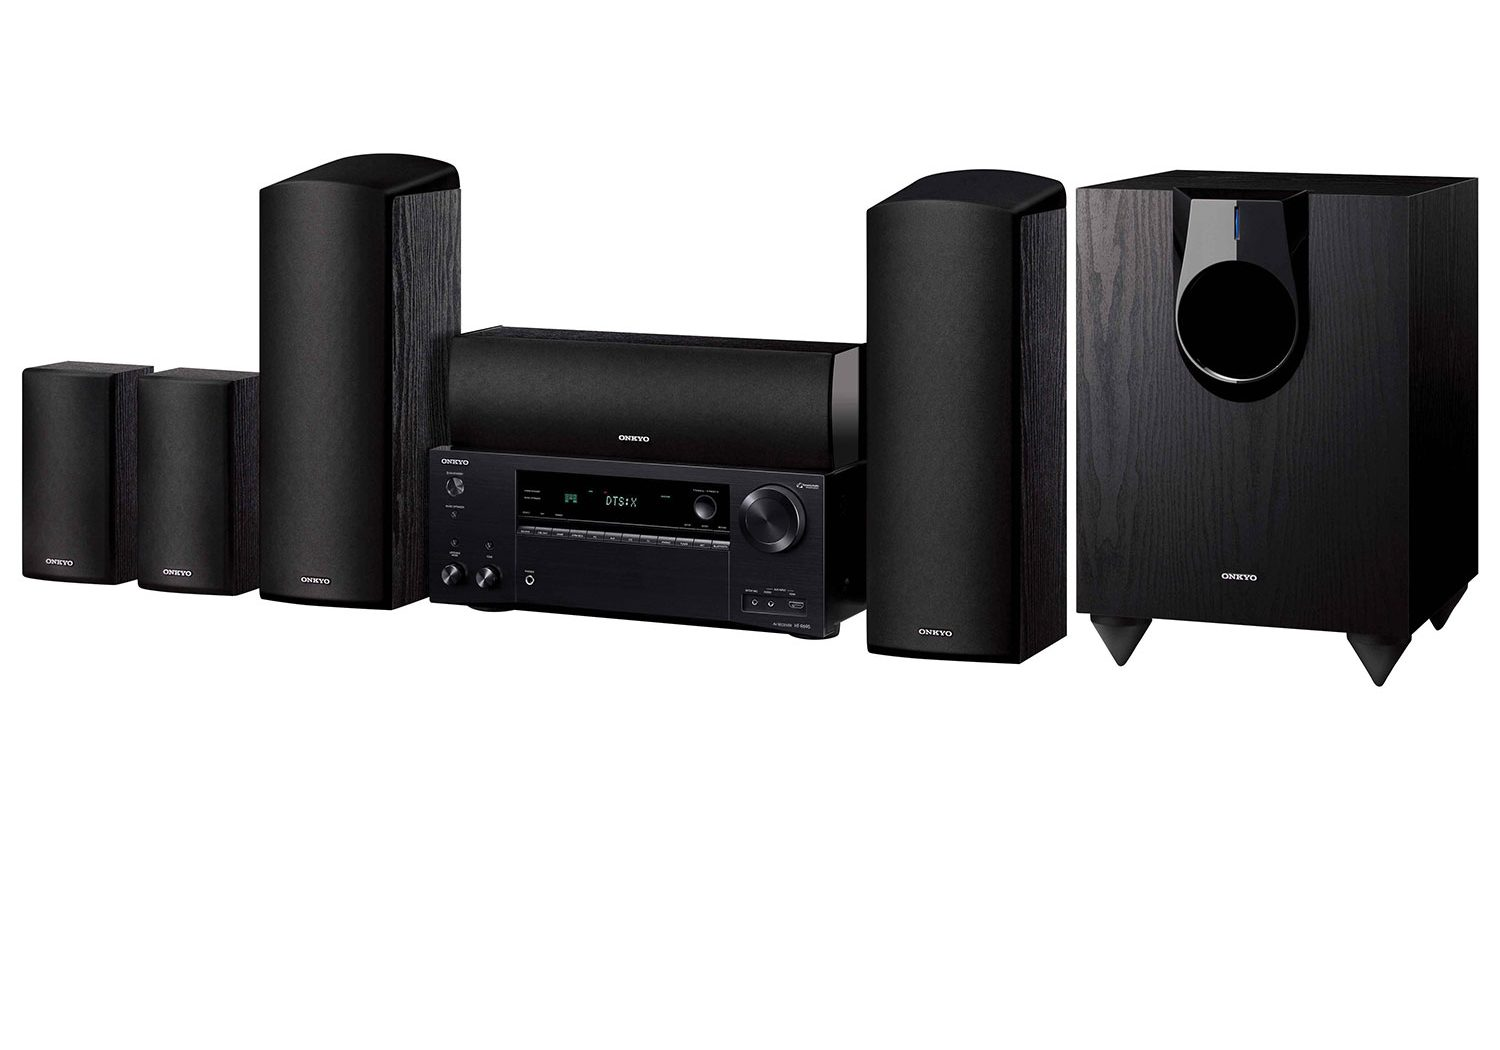 Onkyo Ht S7800 512 Channel Dolby Atmos Home Theatre System Wiring Solutions Review In A Box